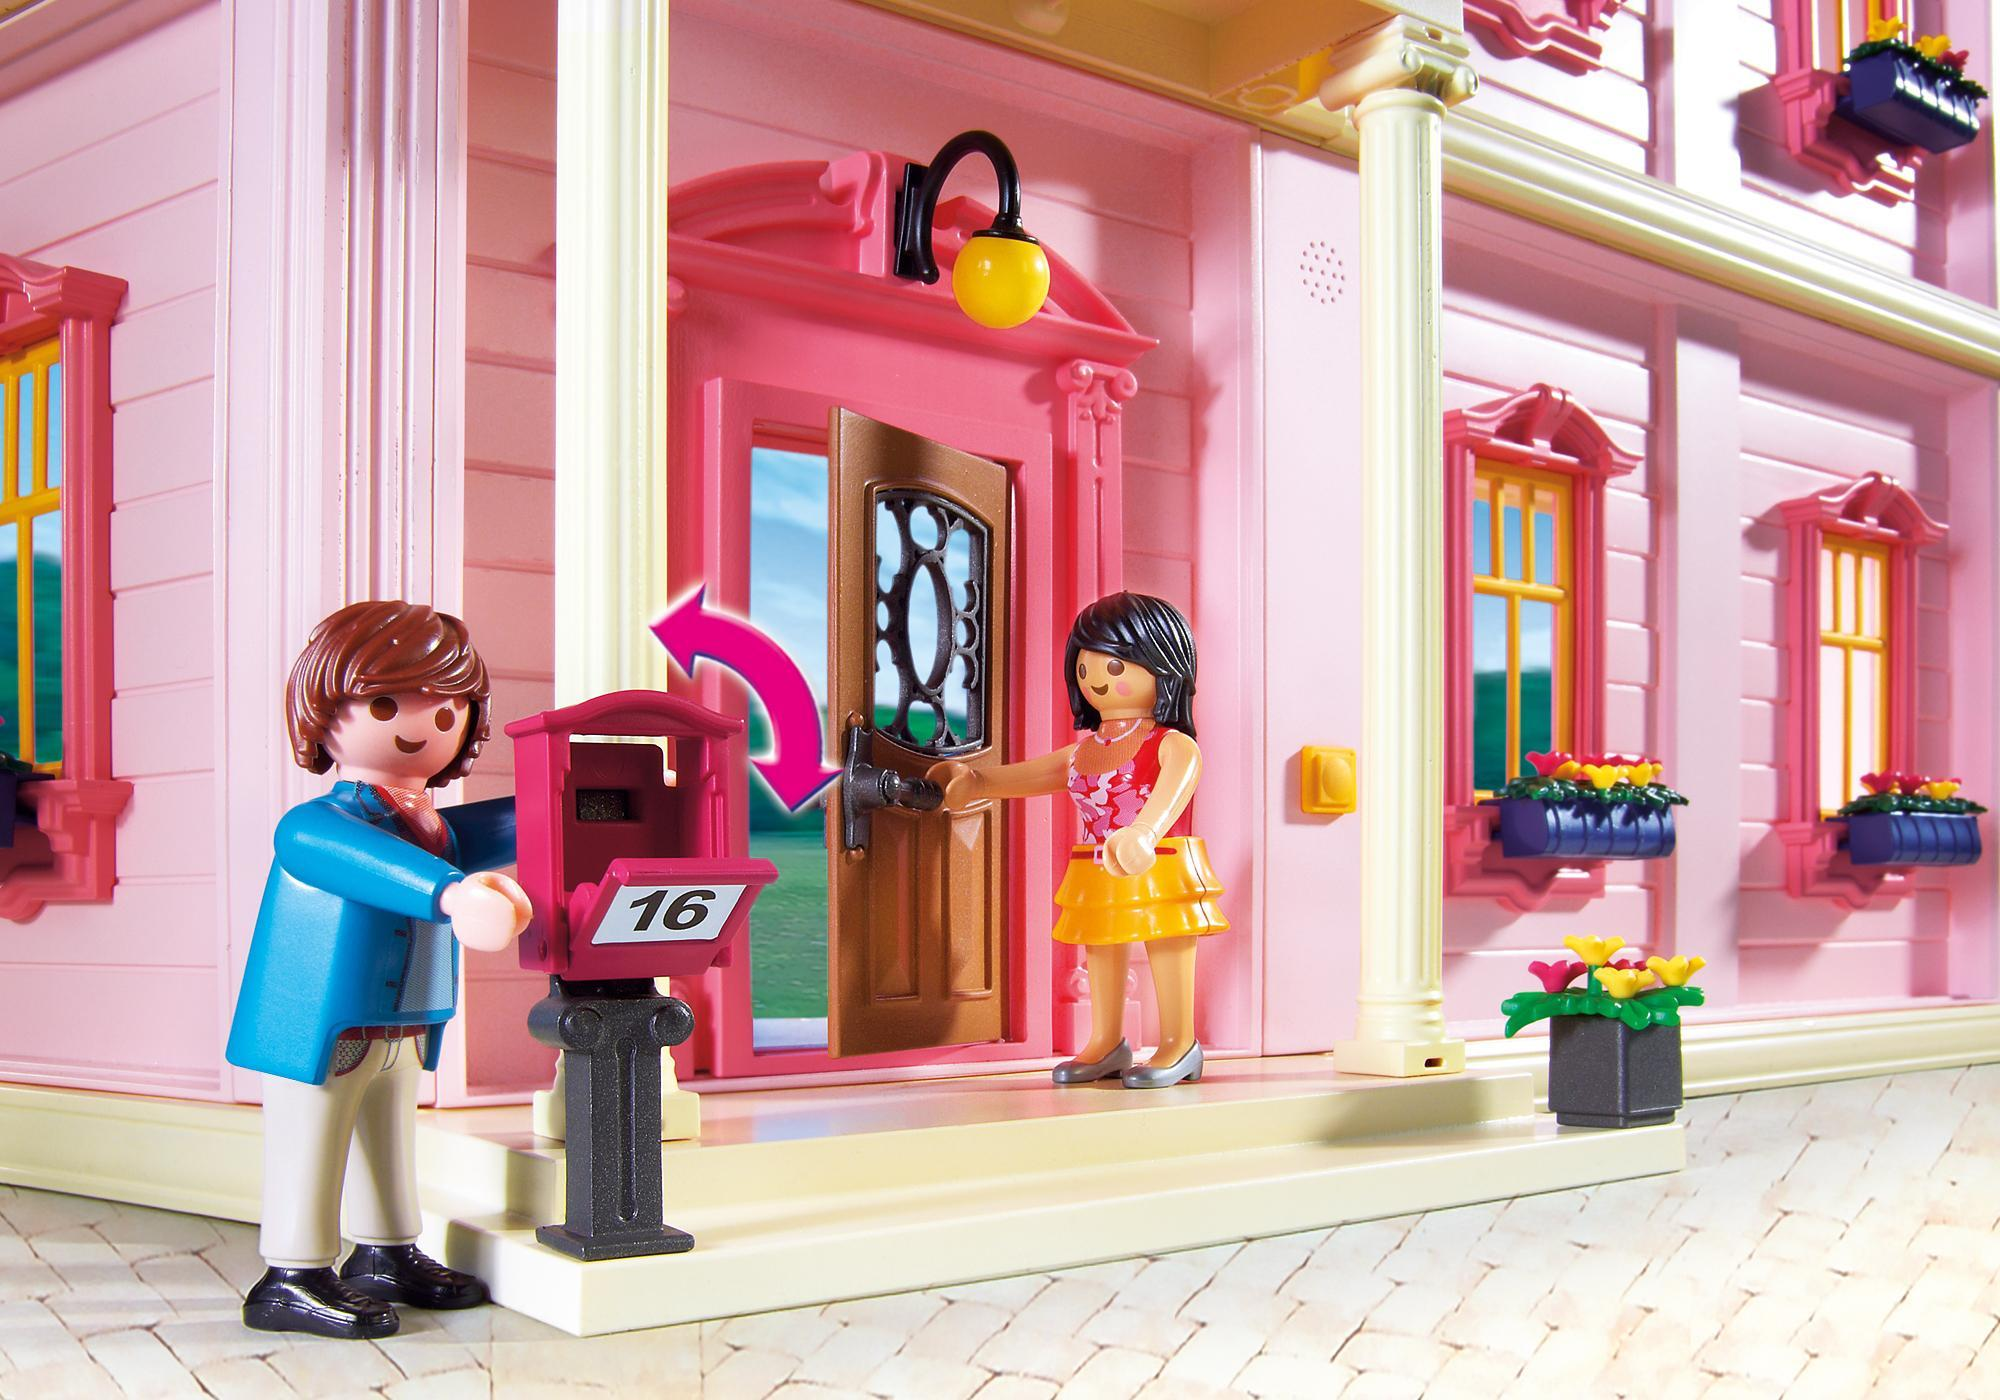 http://media.playmobil.com/i/playmobil/5303_product_extra1/Deluxe Dollhouse